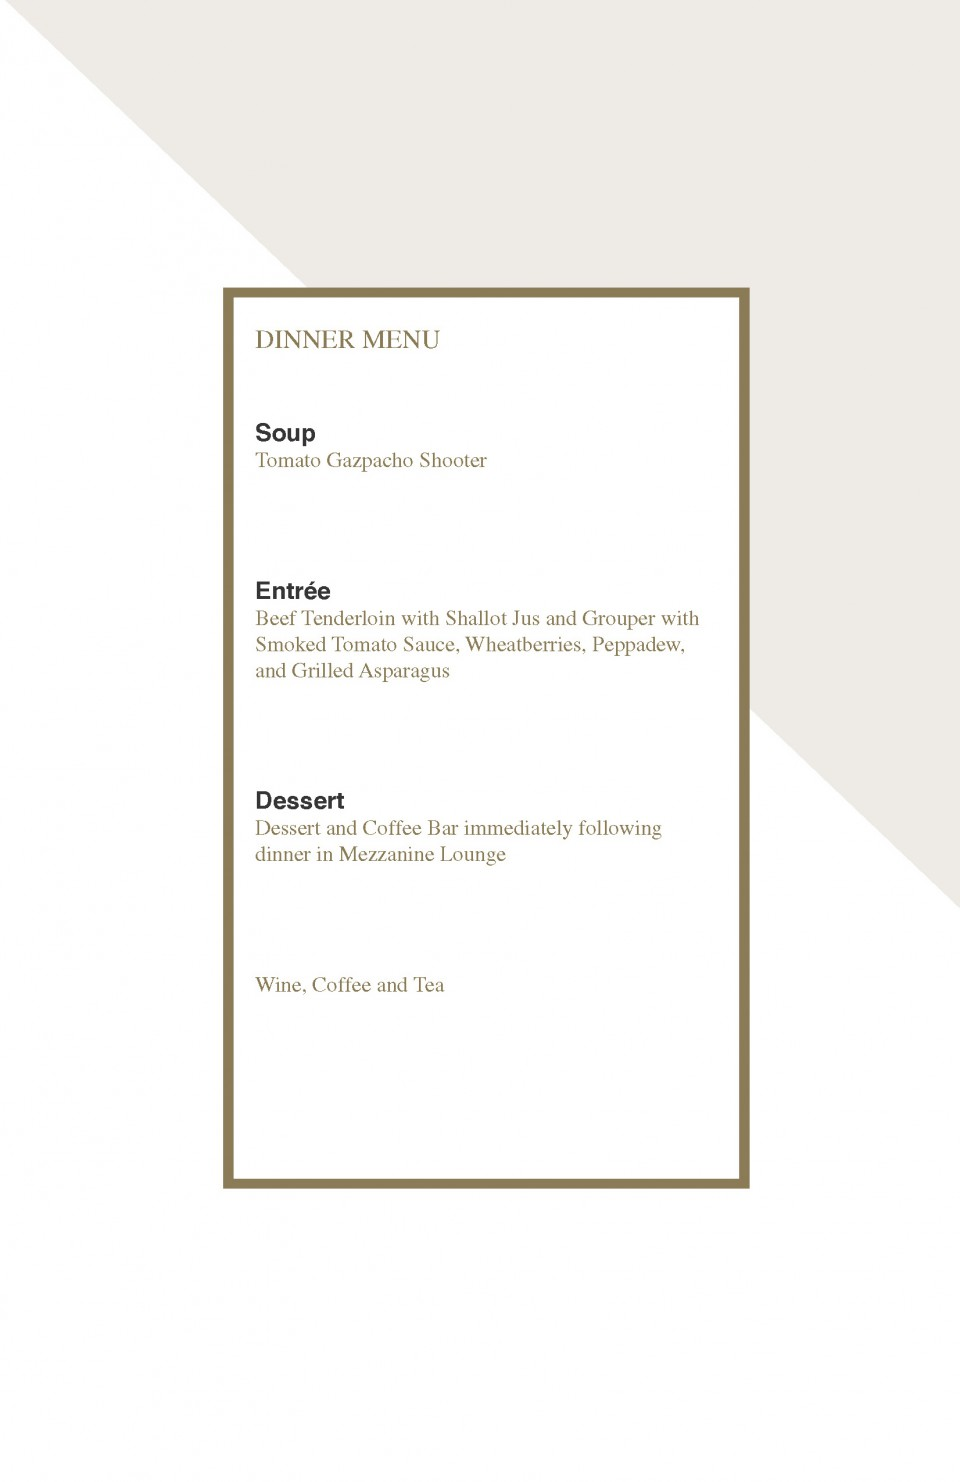 Dinner menu for ceo program design with black and gold text